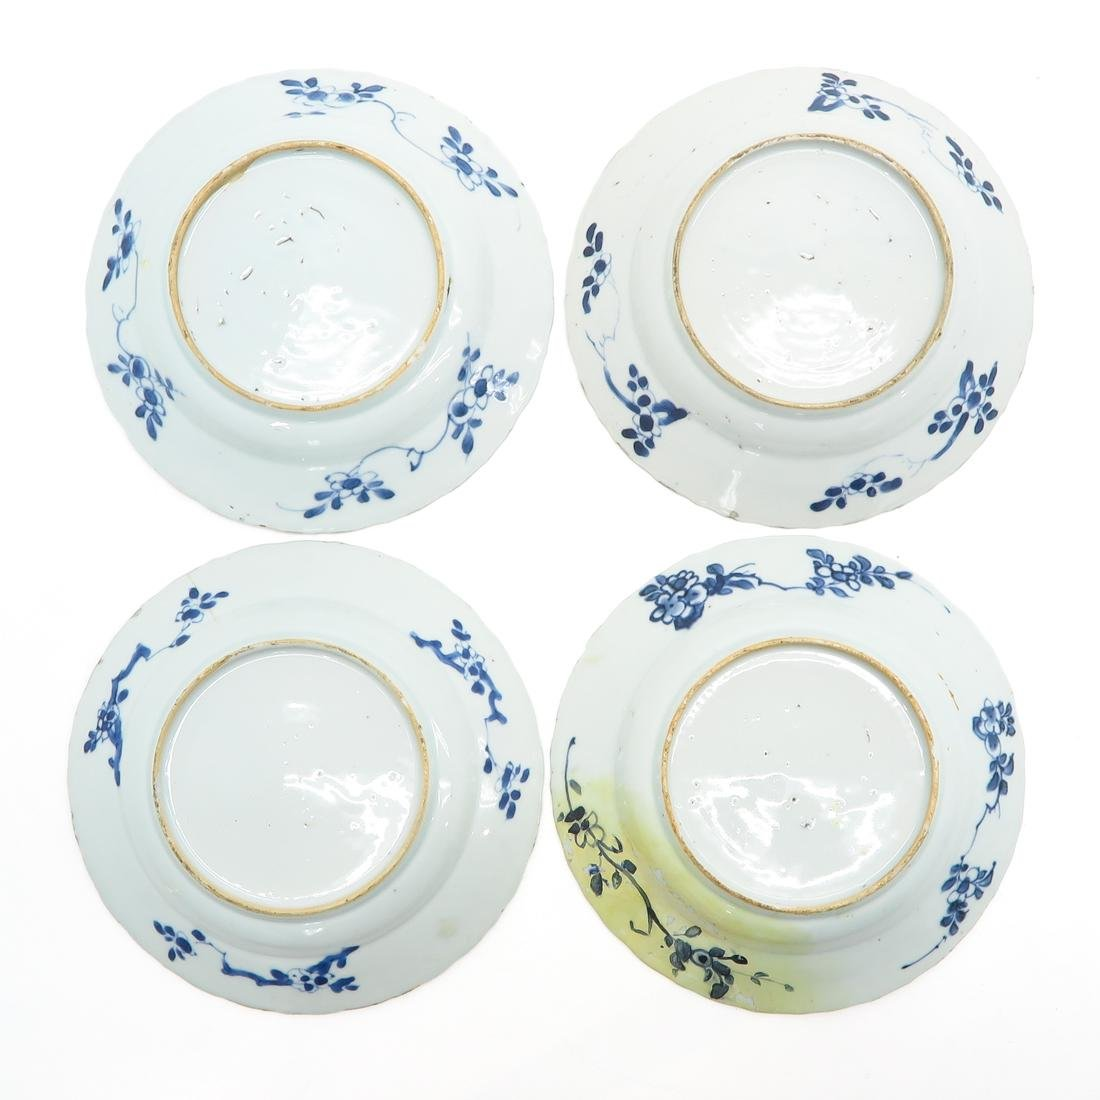 Lot of 4 Plates - 2